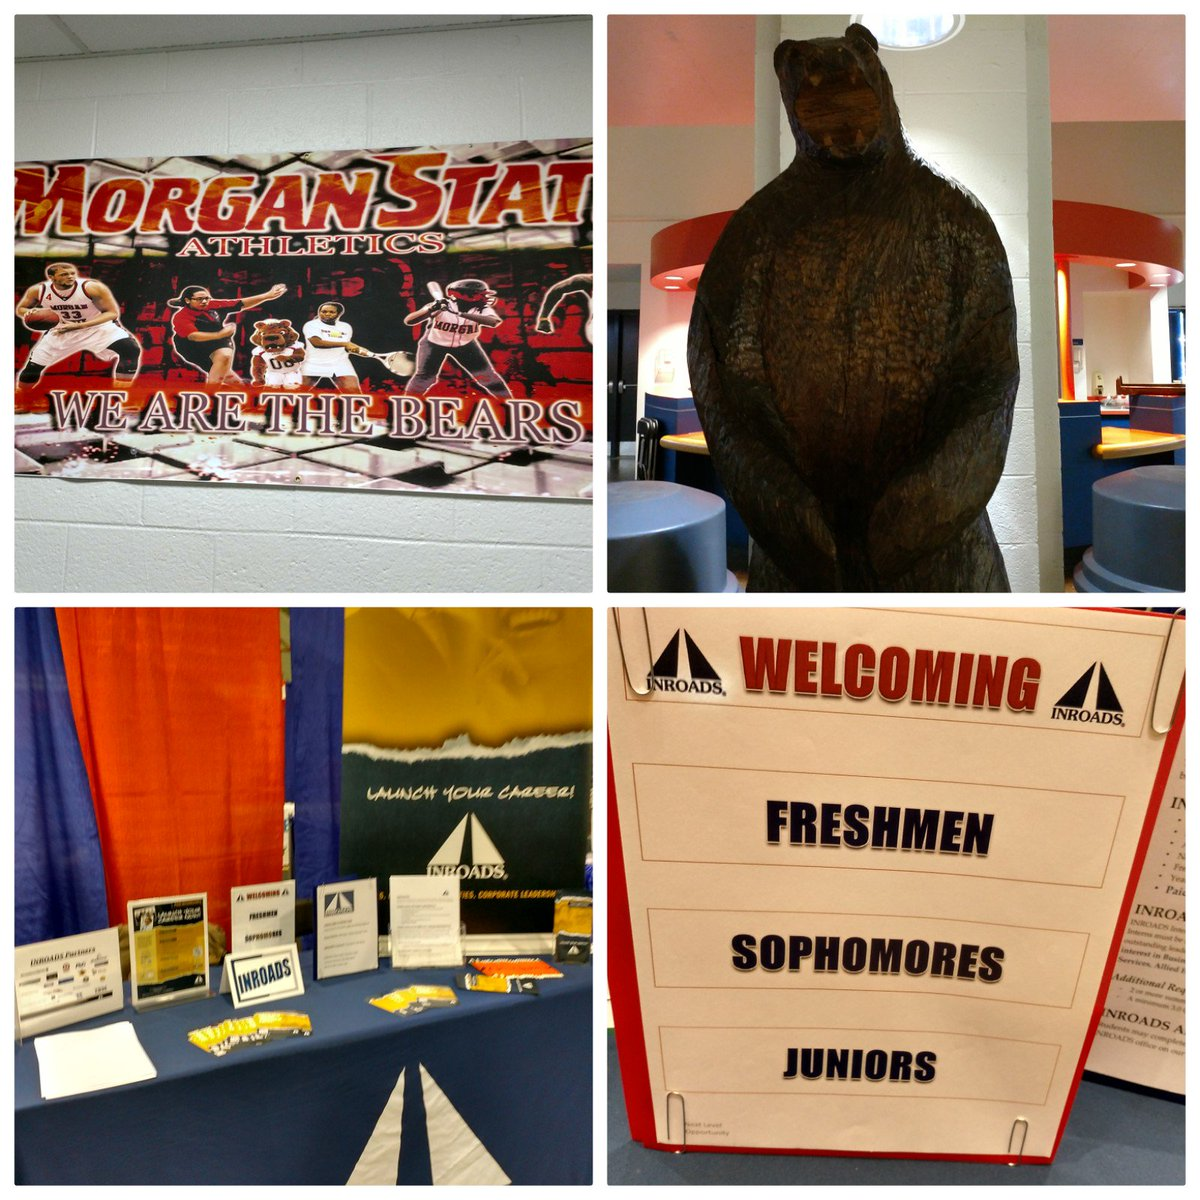 Fantastic Career Day @MorganStBears @MorganStateCCD. Always a pleasure to meet your best &amp; brightest students. #inroads #MorganState <br>http://pic.twitter.com/BXVy22l74T &ndash; à Morgan State University